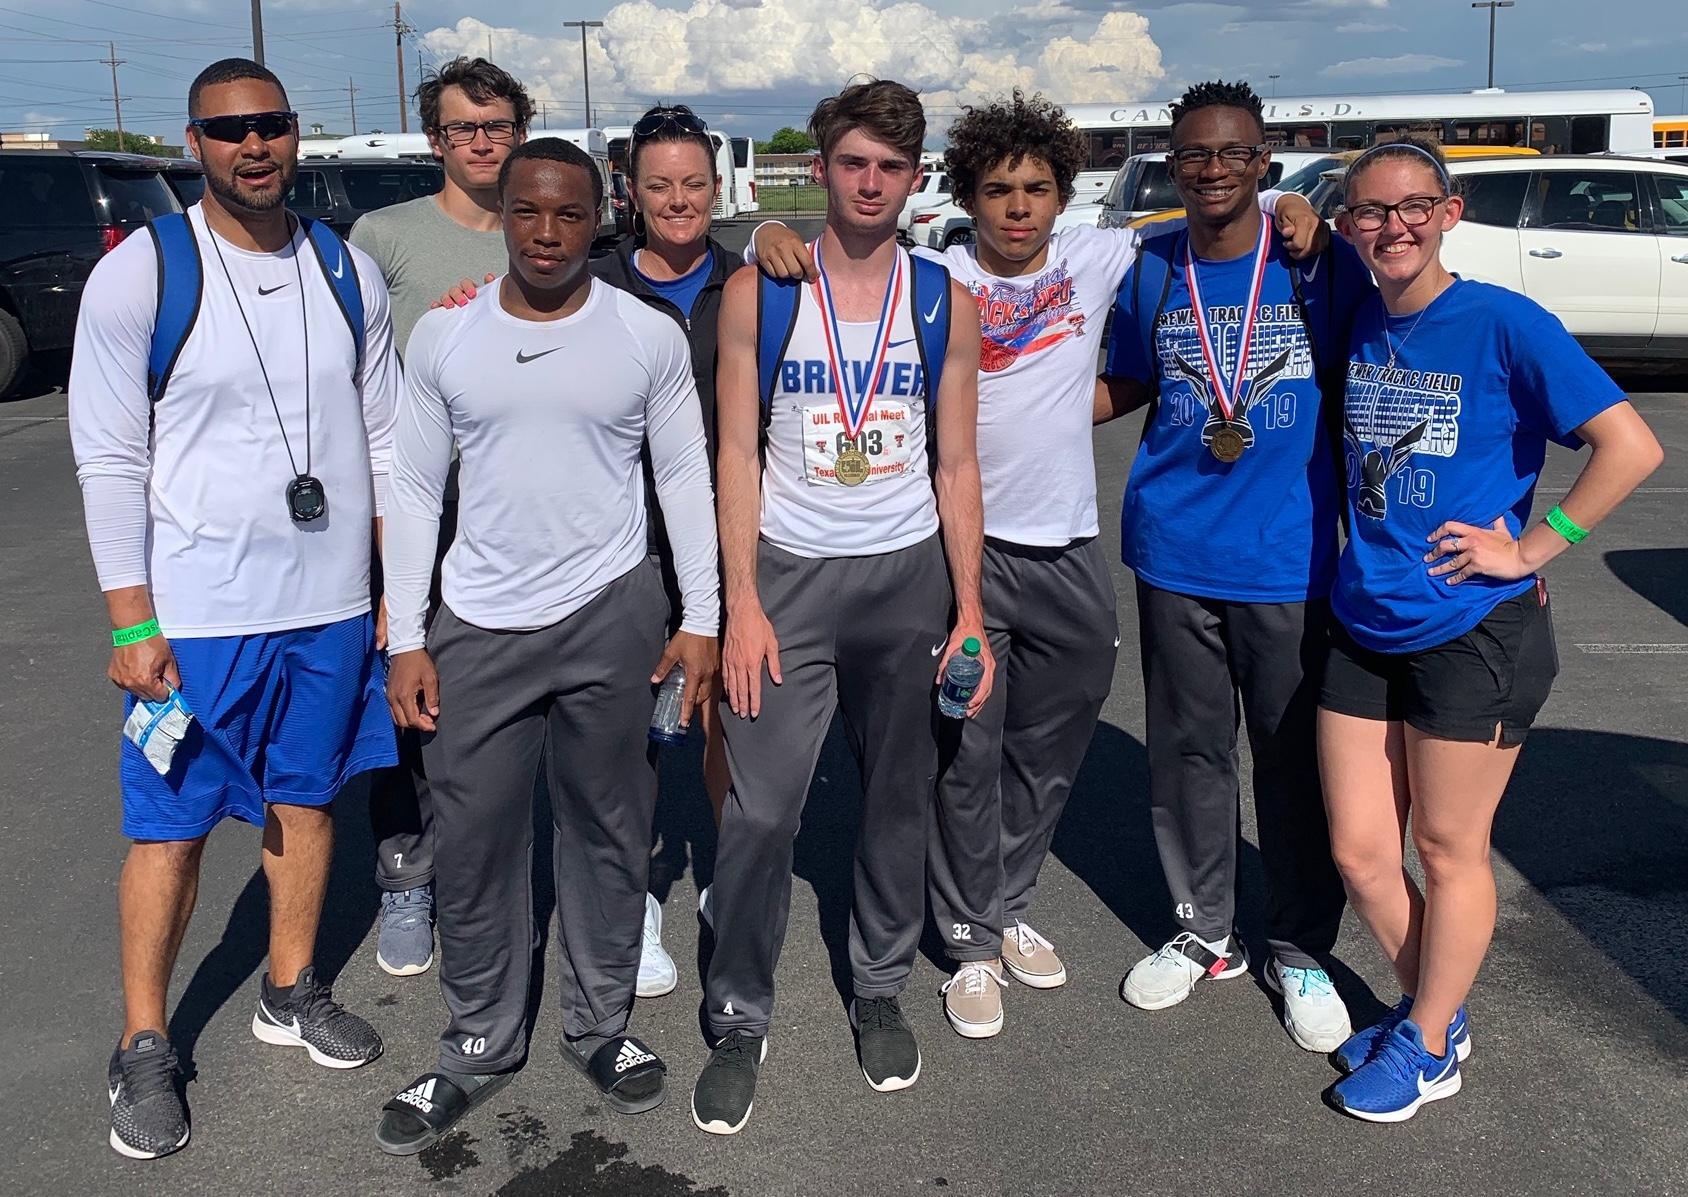 Brewer High School athletes competed at the Regional Track Meet on April 22, and Travis Bradley won first place in the 300 meter hurdles, advancing to the State Track Meet in Austin on May 10!